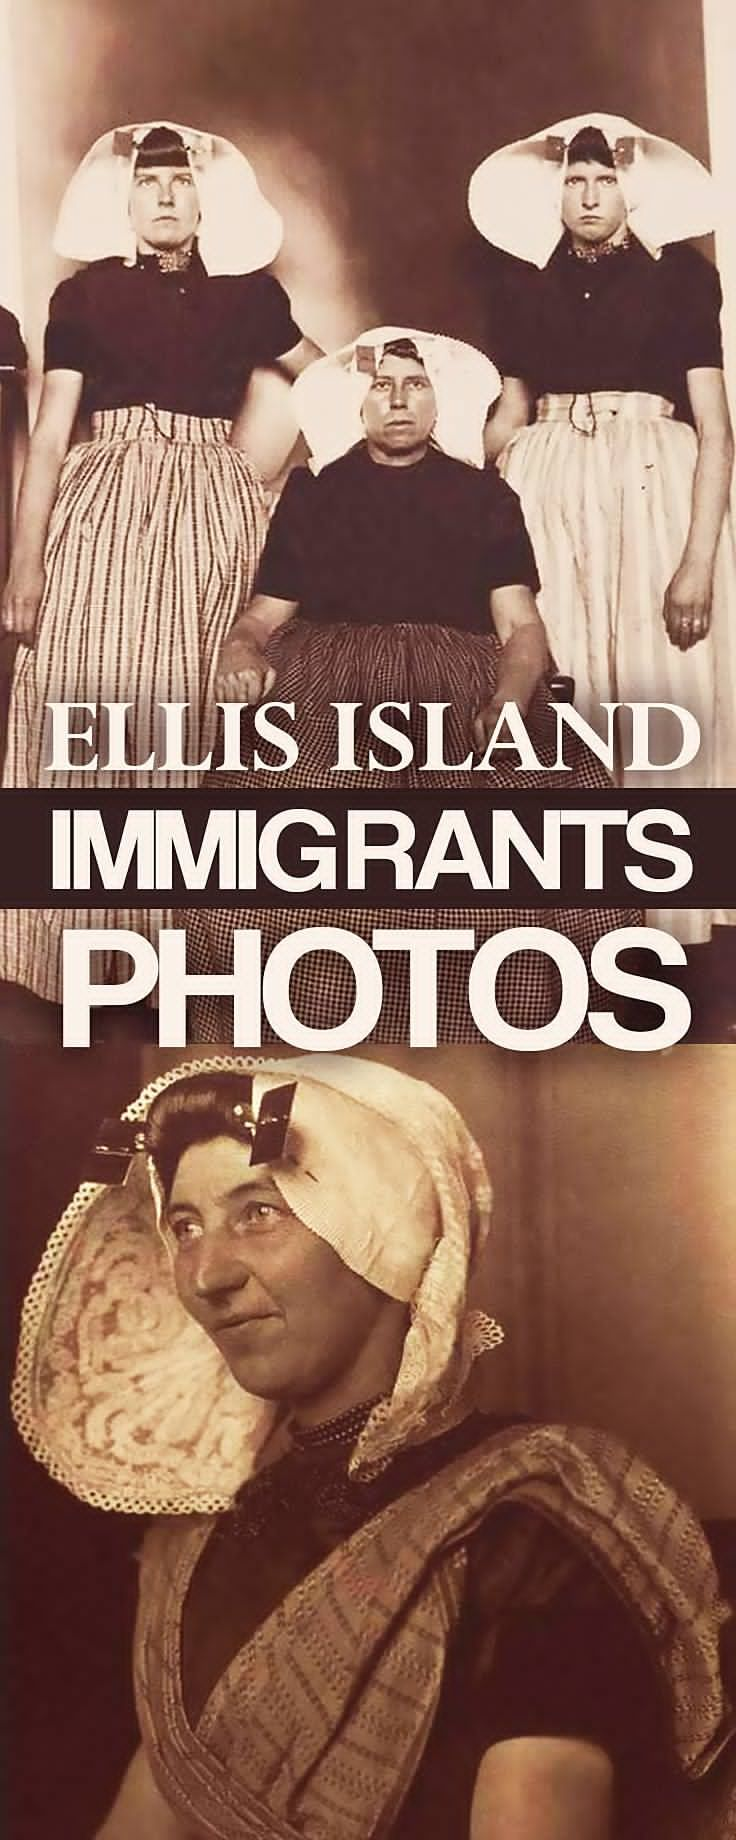 This is what America's immigrants looked like when they arrived on Ellis Island. As many as 5,000 people passed through Ellis Island each day. Just a few were immortalized in portraits like these.